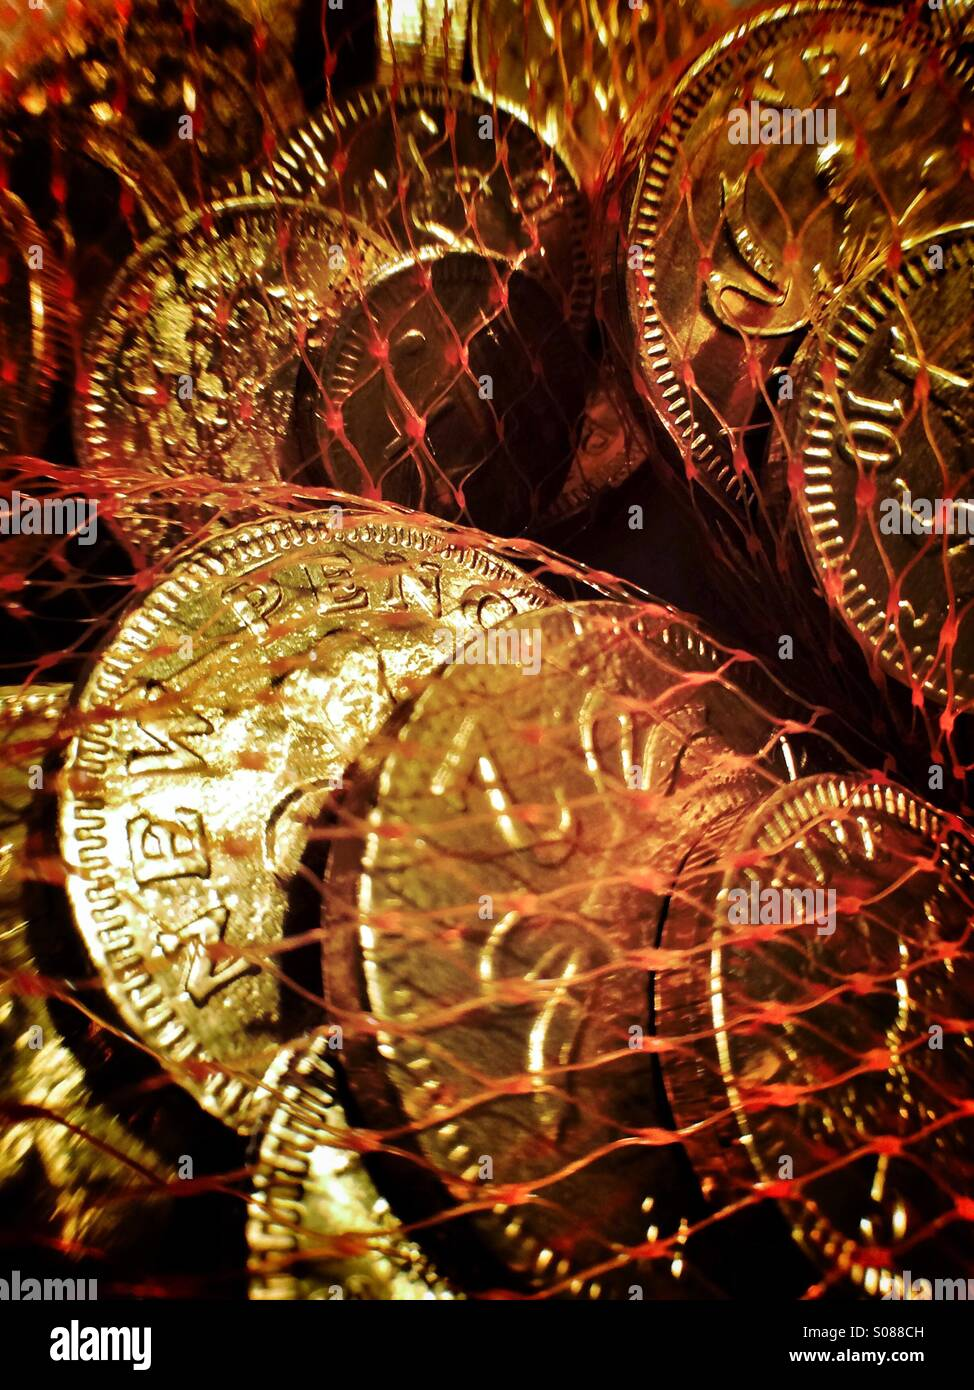 Chocolate coins - Stock Image